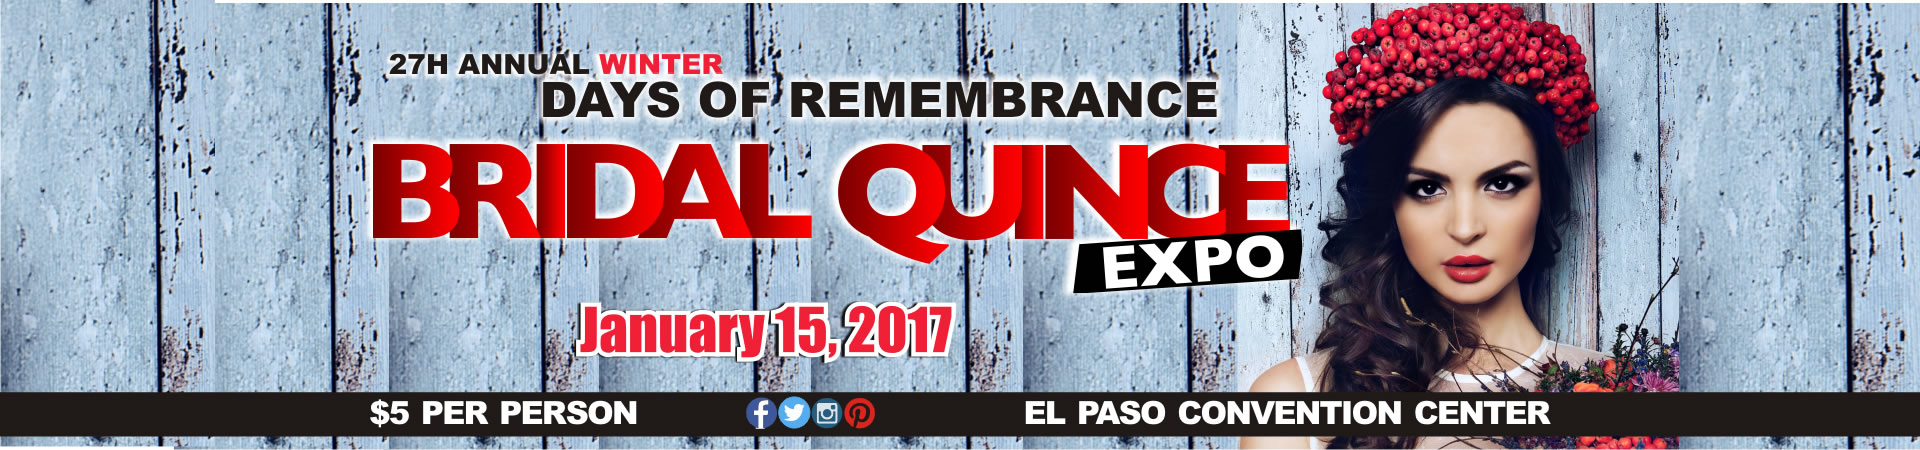 Days of Remembrance 2017 Winter Expo - Elegant Penguin El Paso